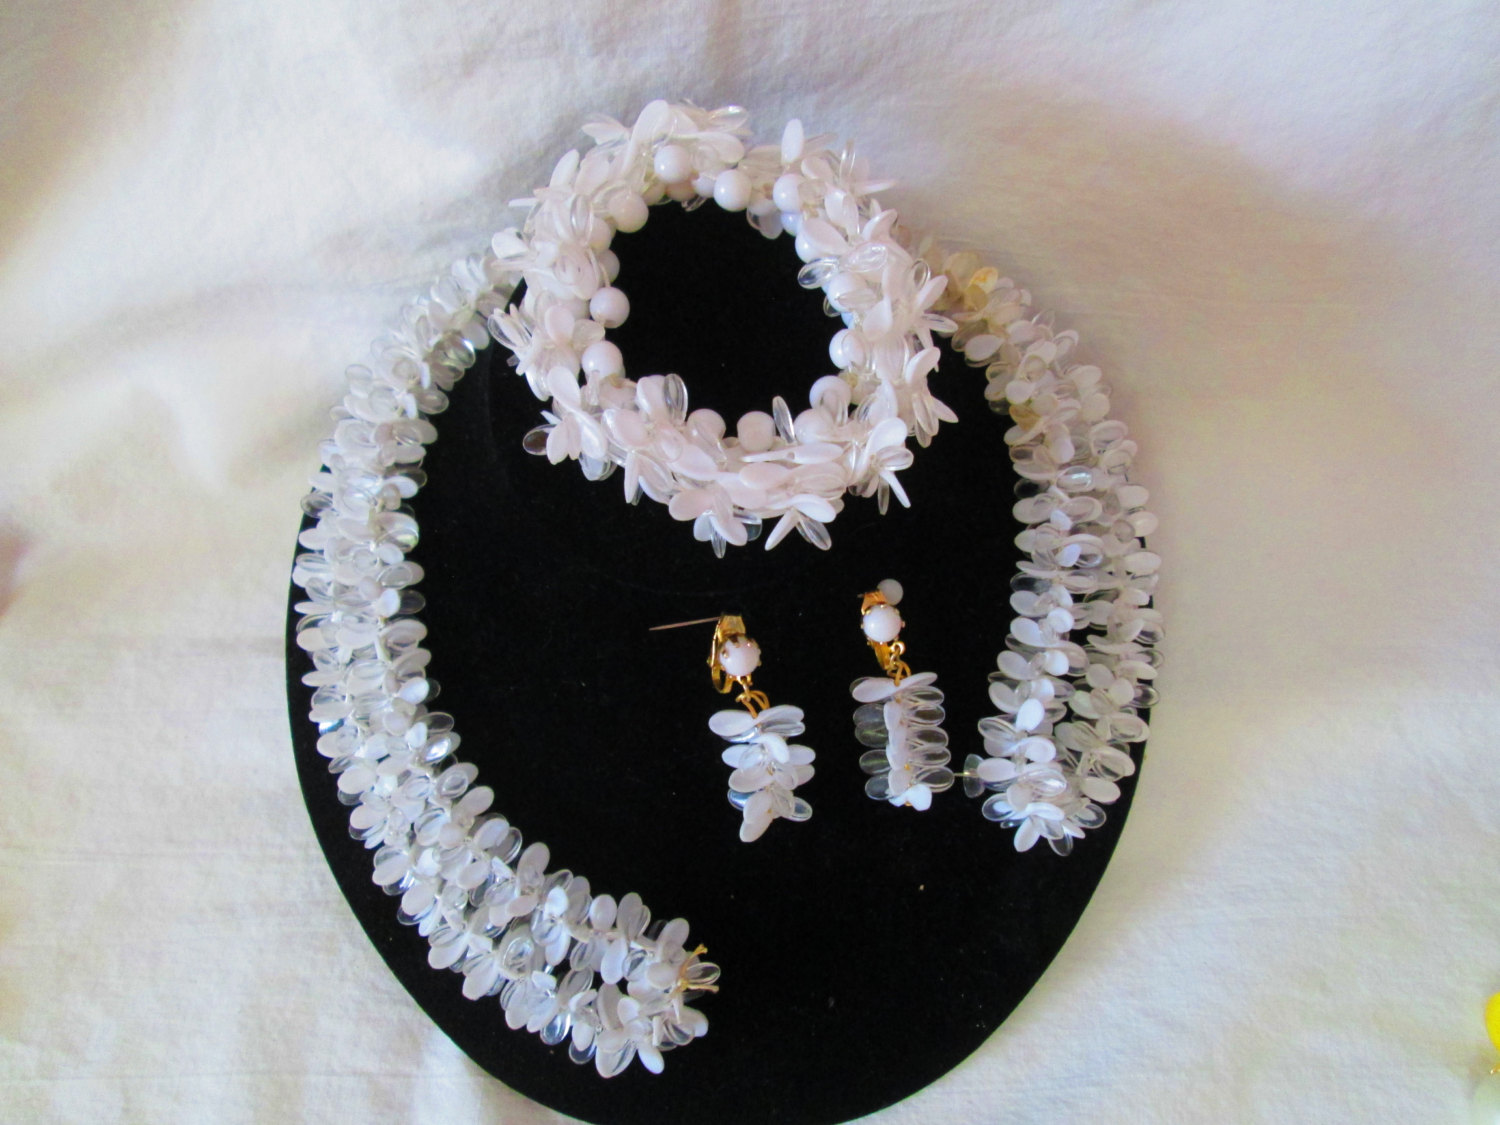 Fantastic 1950 S White And Clear Jewelry Set Bracelet Necklace Clip Earrings Wow Vintage Costume